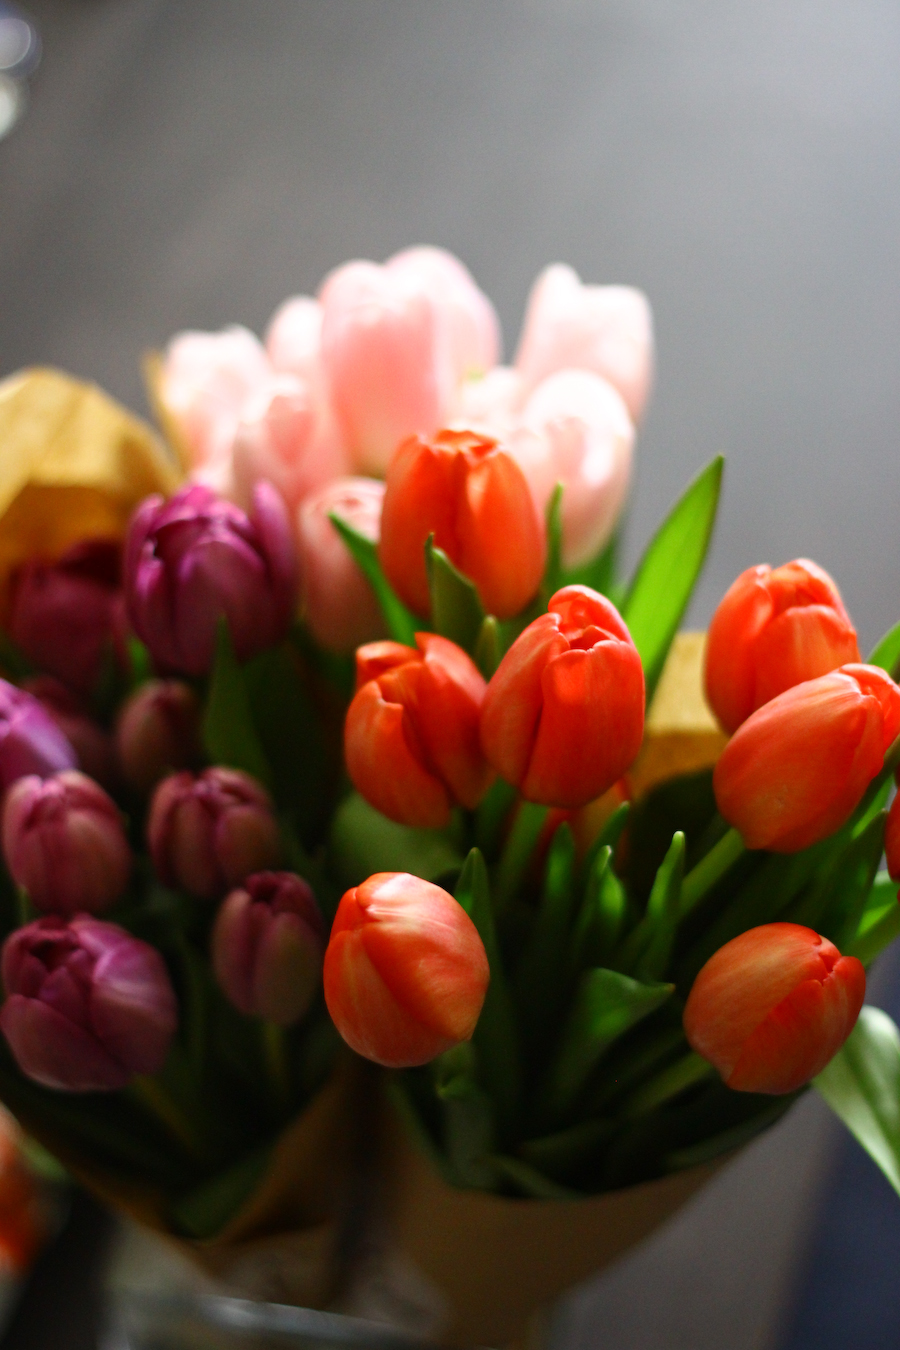 Flower Power - Tulips!